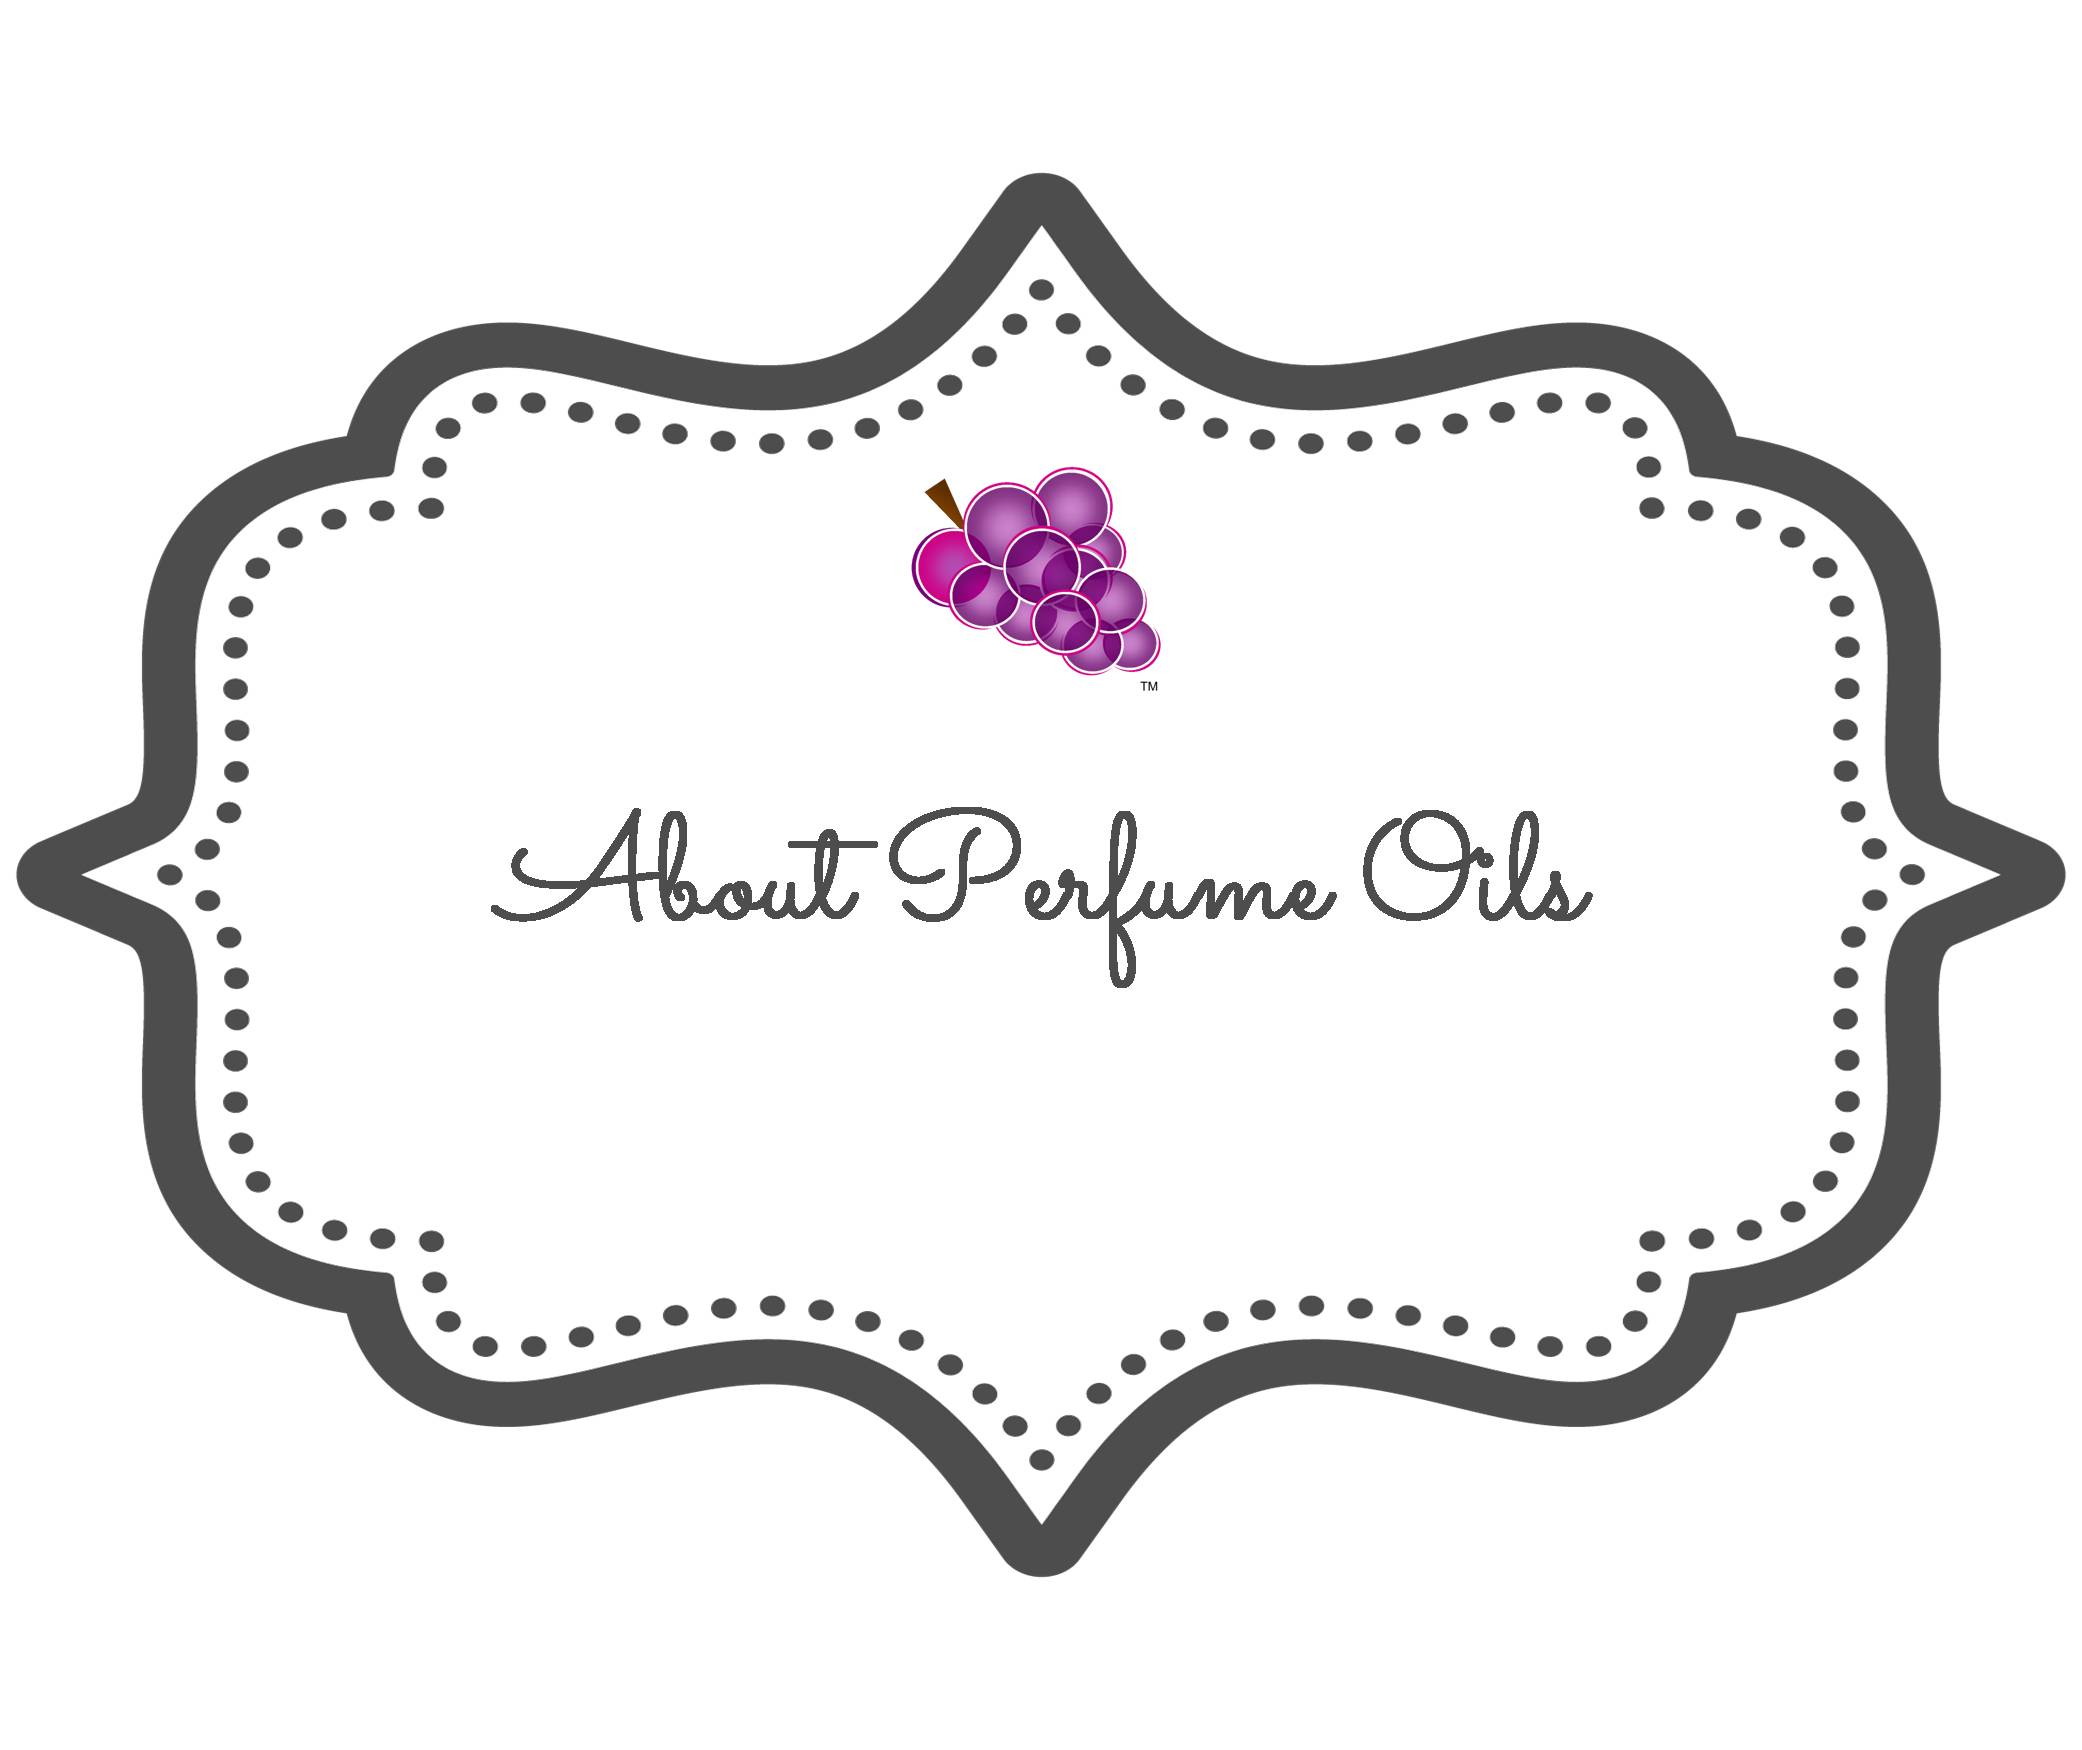 about-roll-on-perfume-oils.jpg